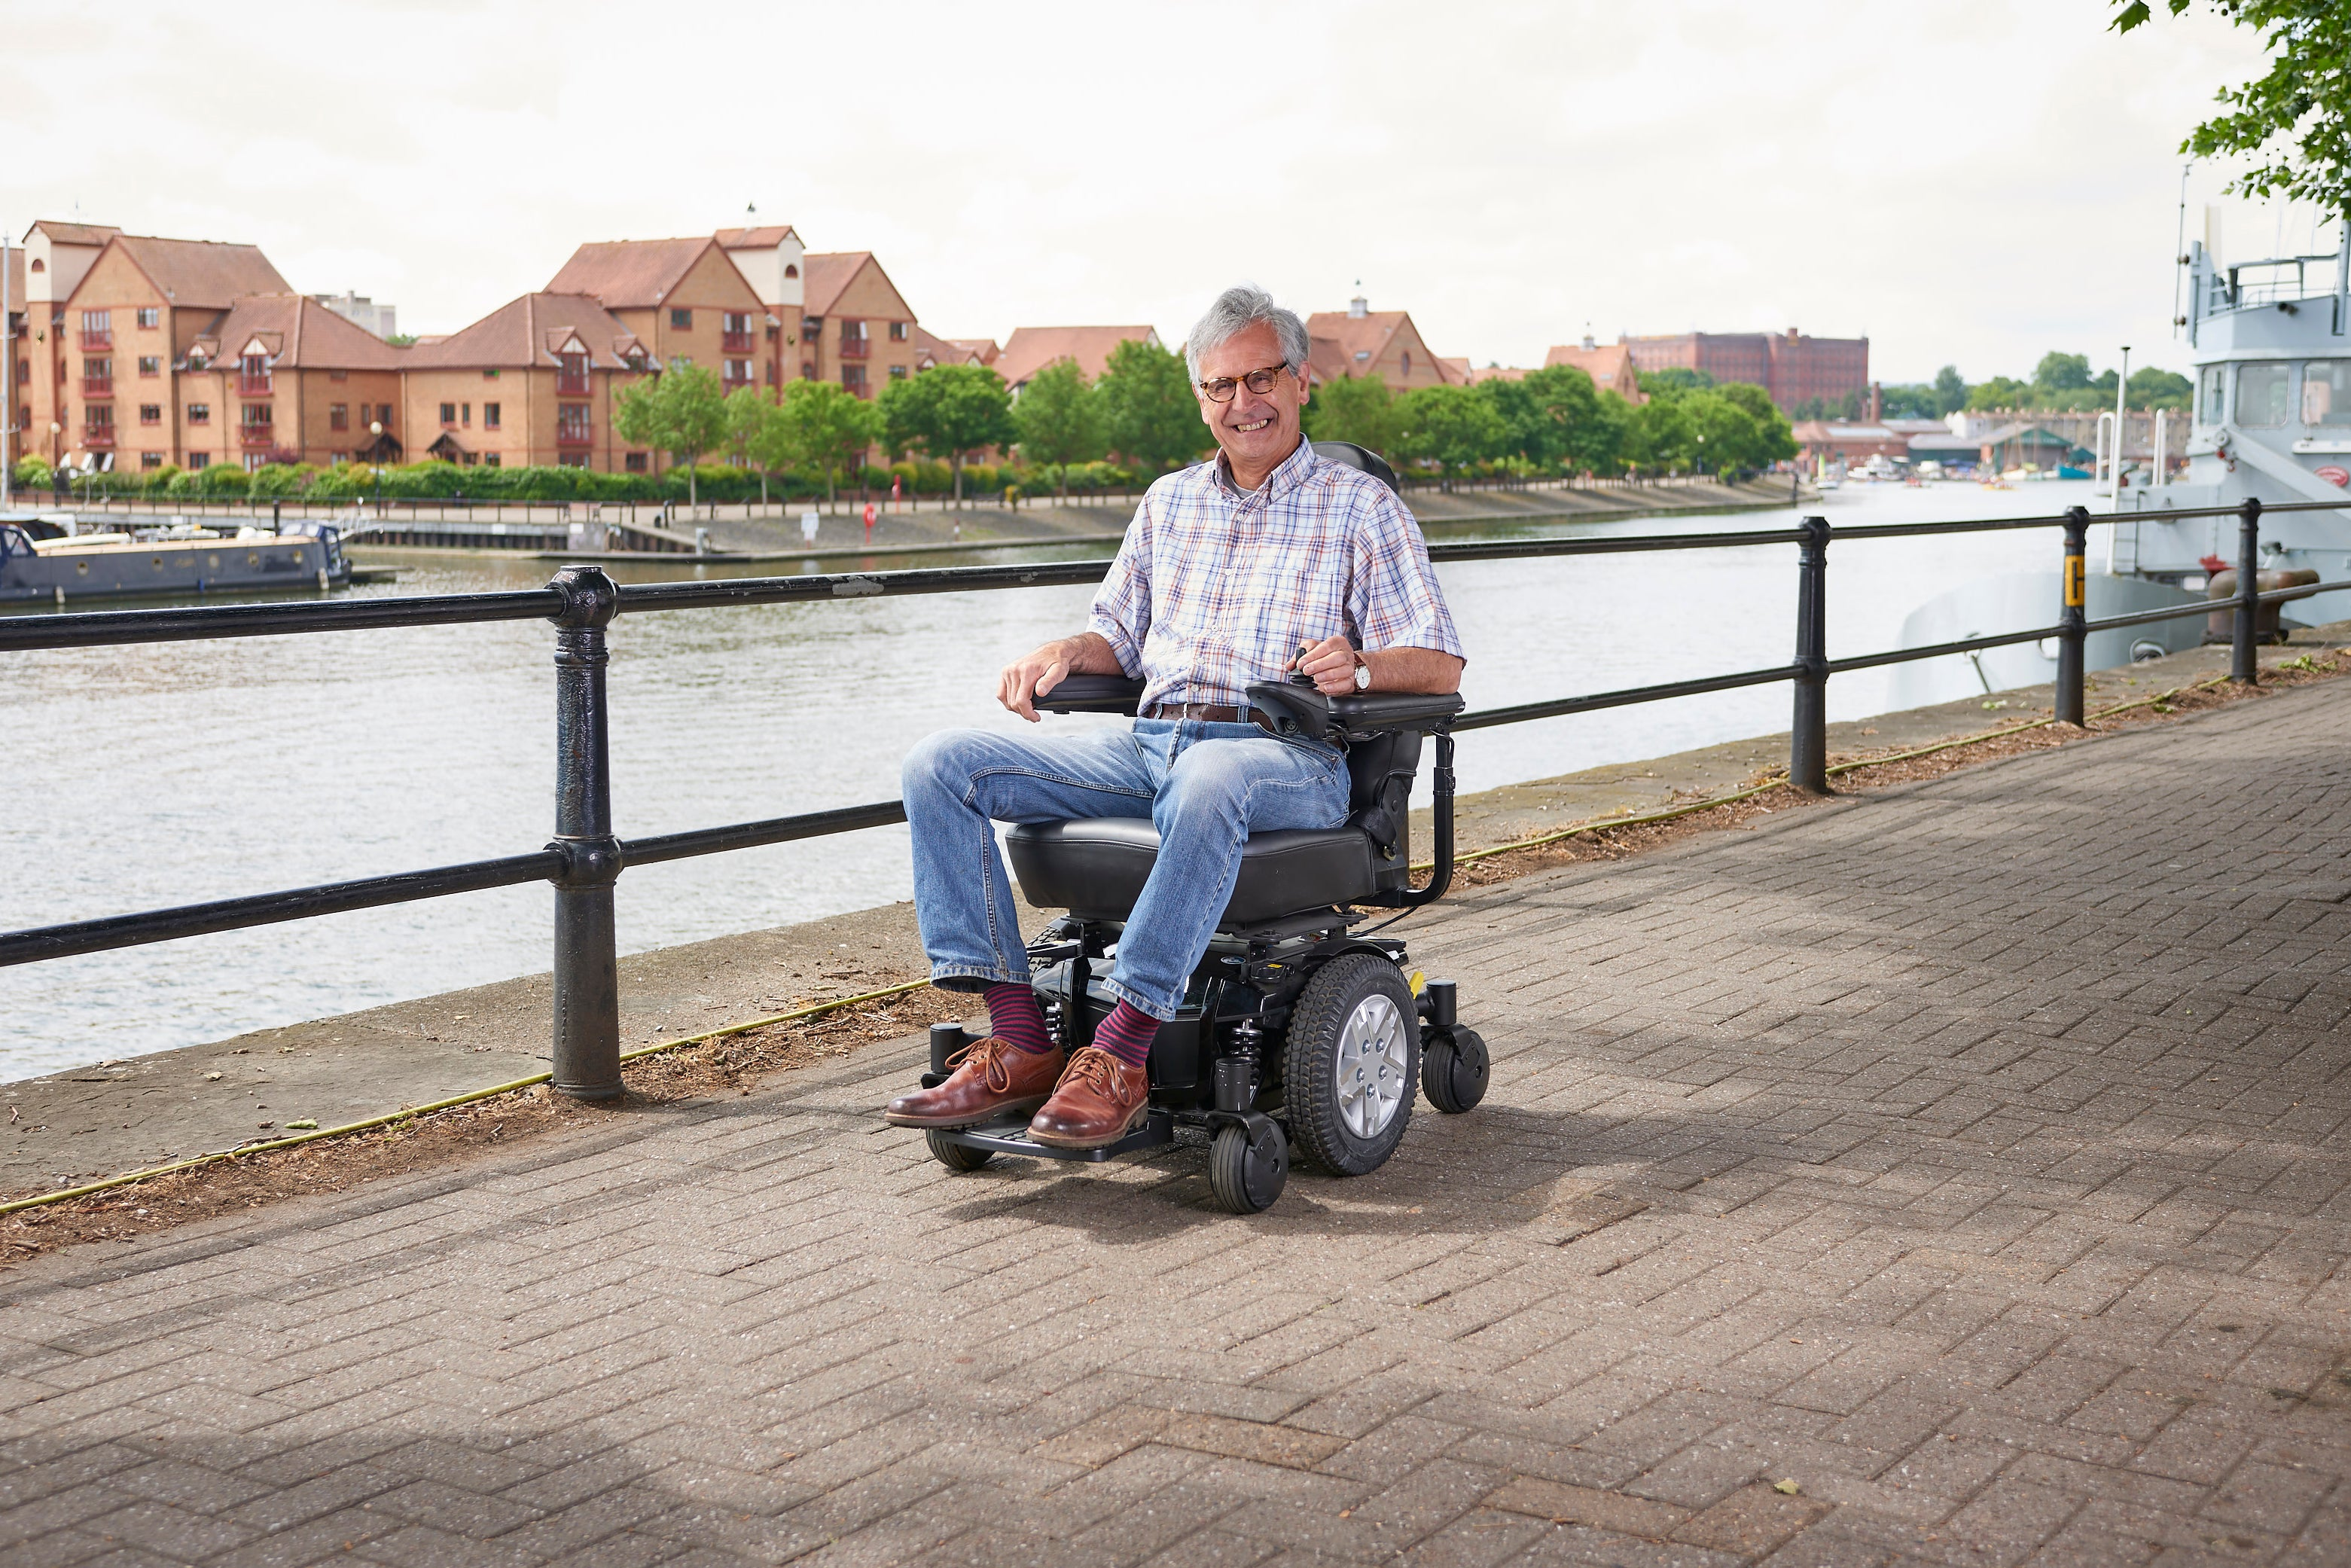 Image of a Middletons powerchair